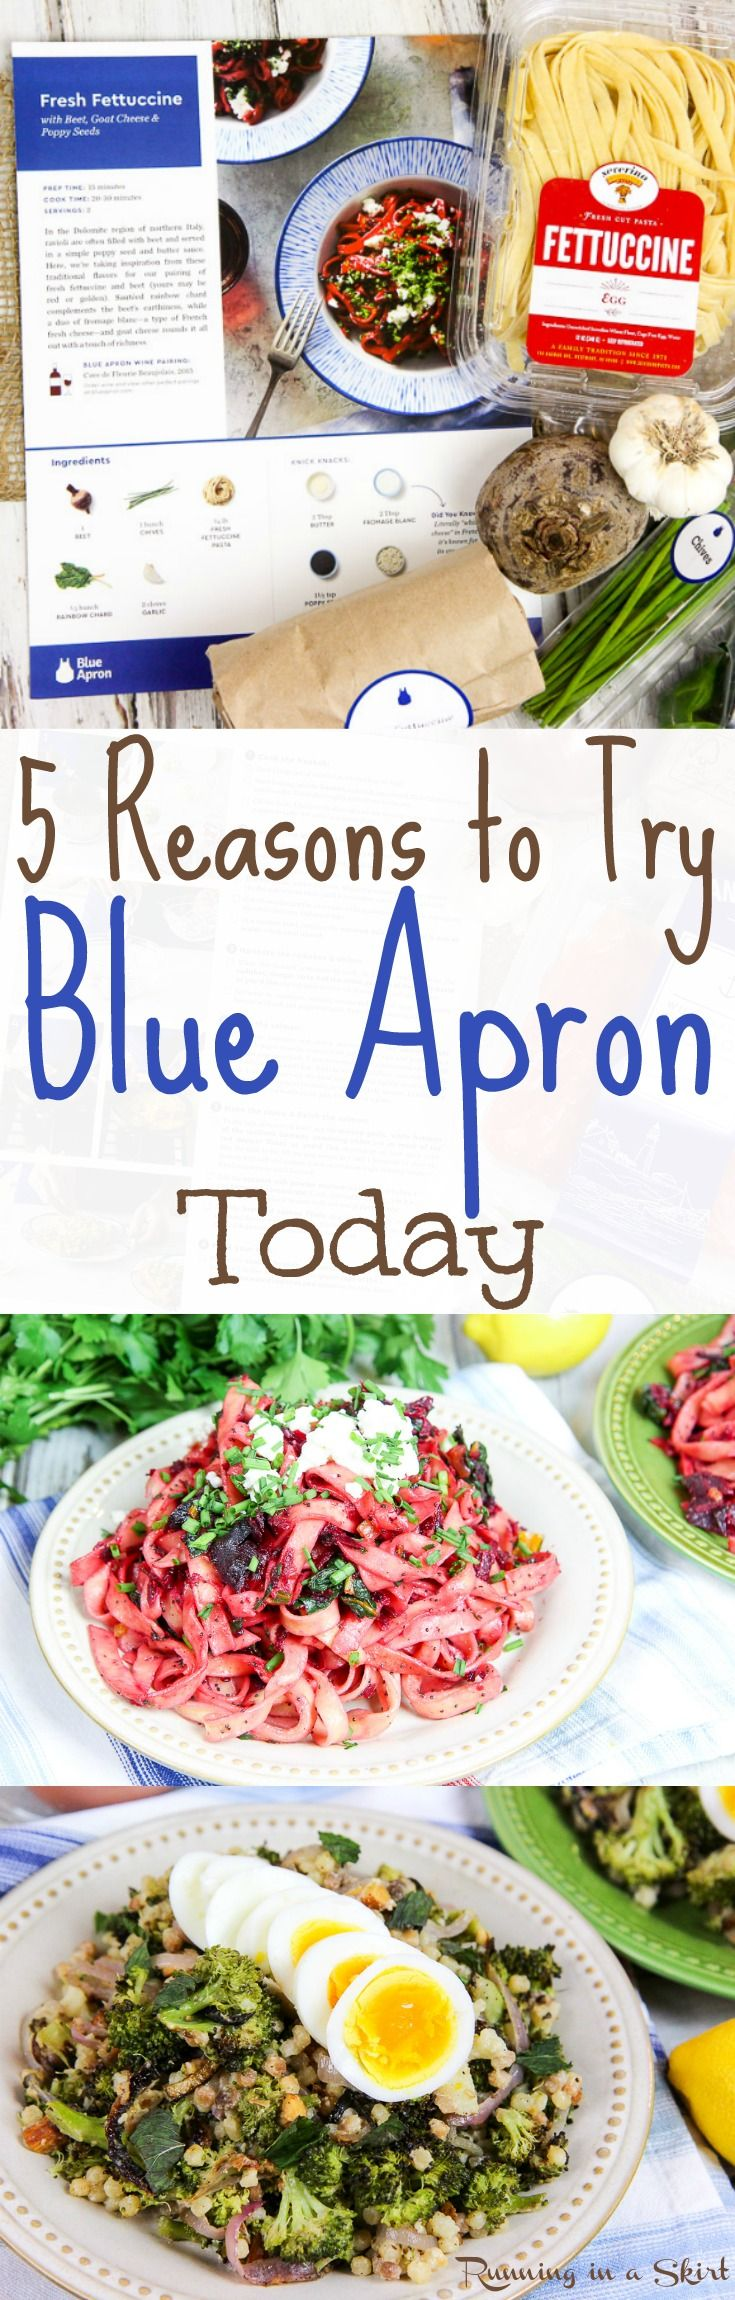 Blue apron edmonton - 5 Reasons To Try Blue Apron Today An Honest Review Of The Food Delivery Box